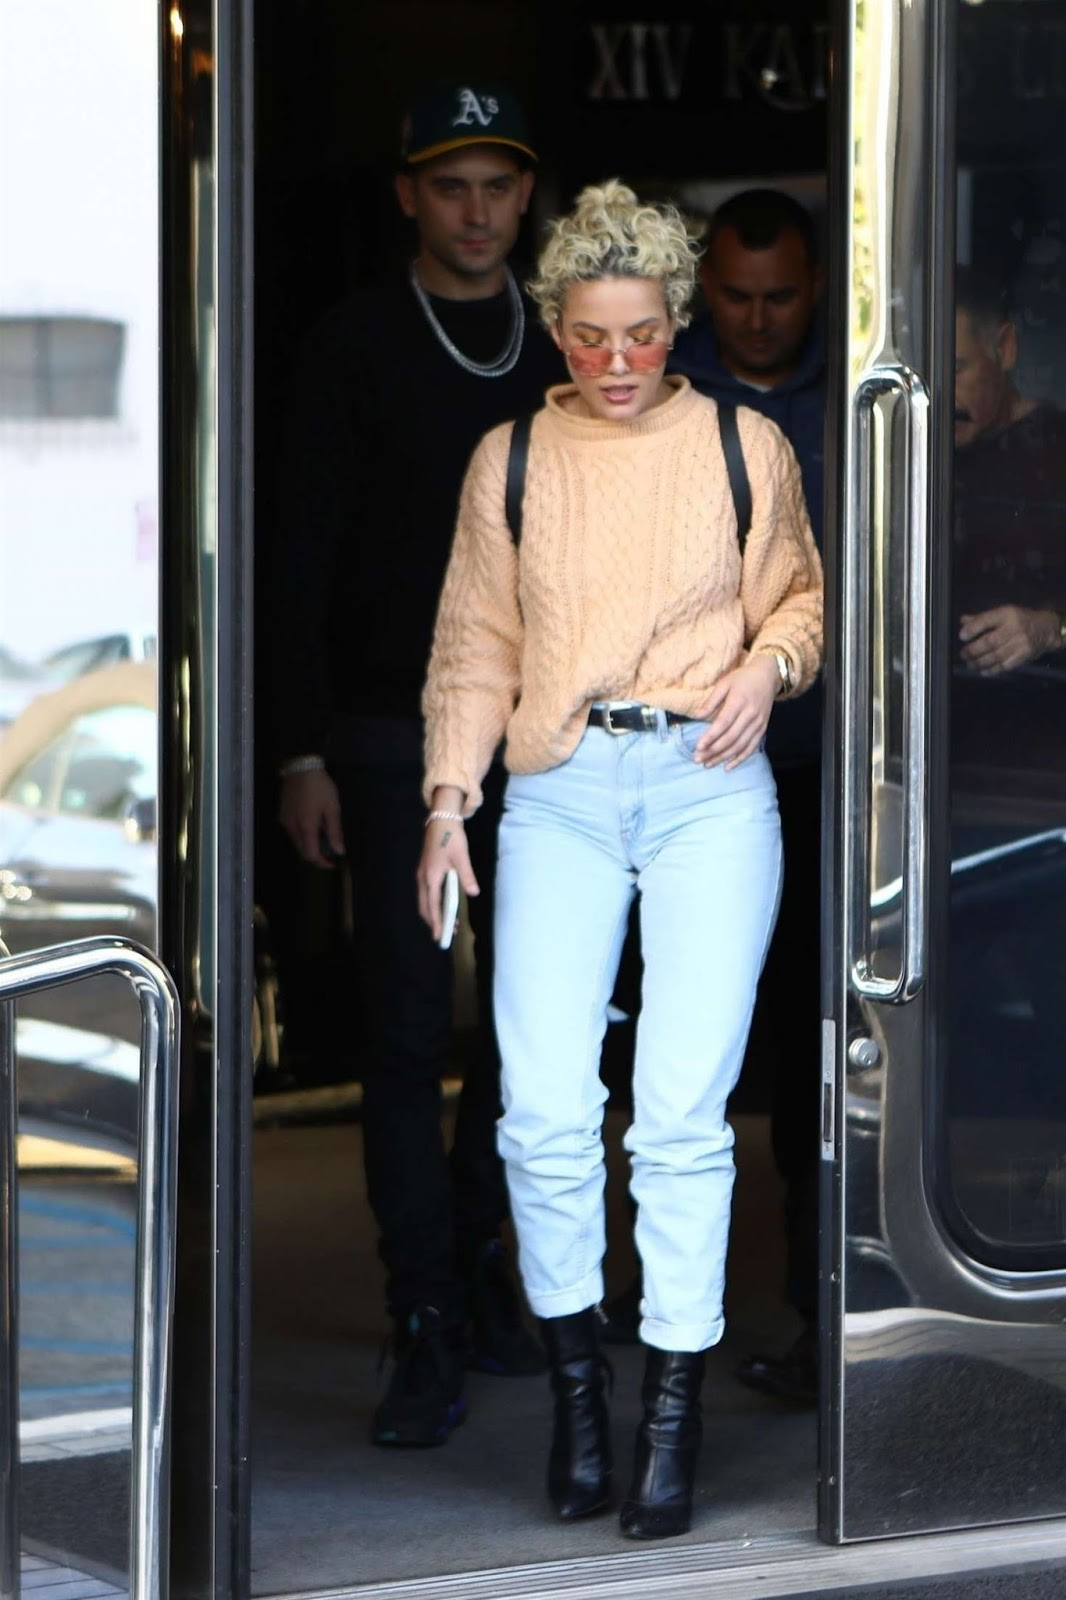 Discussion on this topic: Pixie lott style exits tv studios in london, isabela-moner-at-the-jeremy-scott-show/